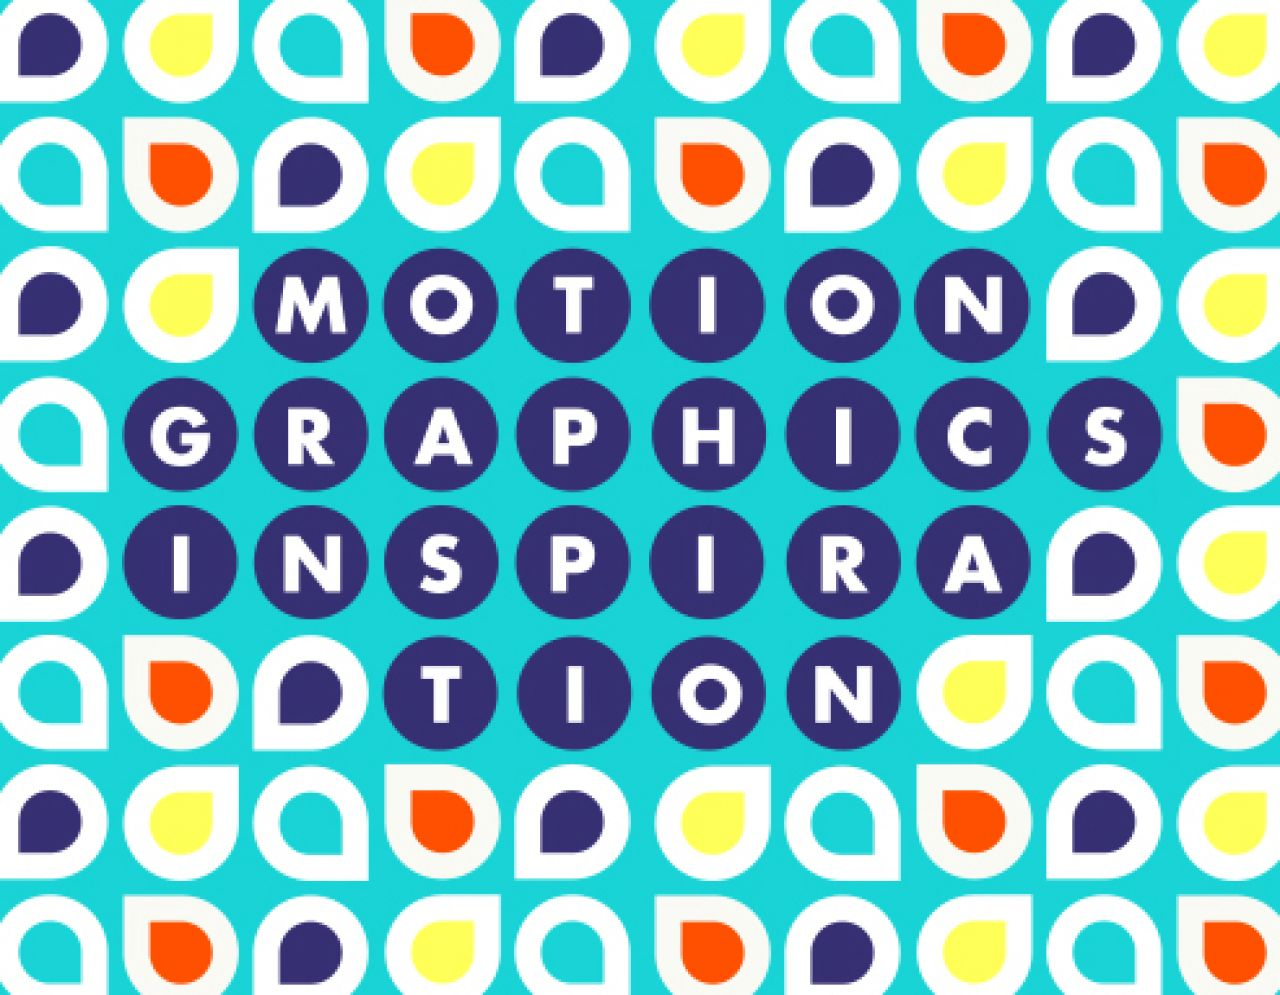 Motion Graphics Inspiration: The Best Motion Graphics From